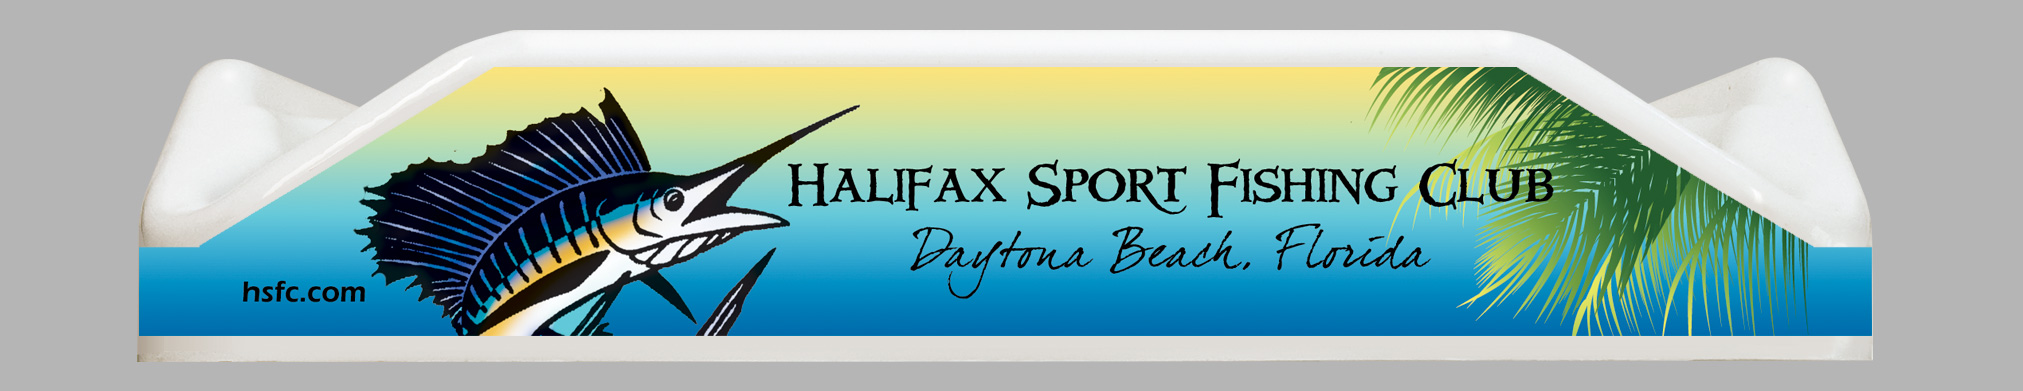 Halifax Sport Fishing Club